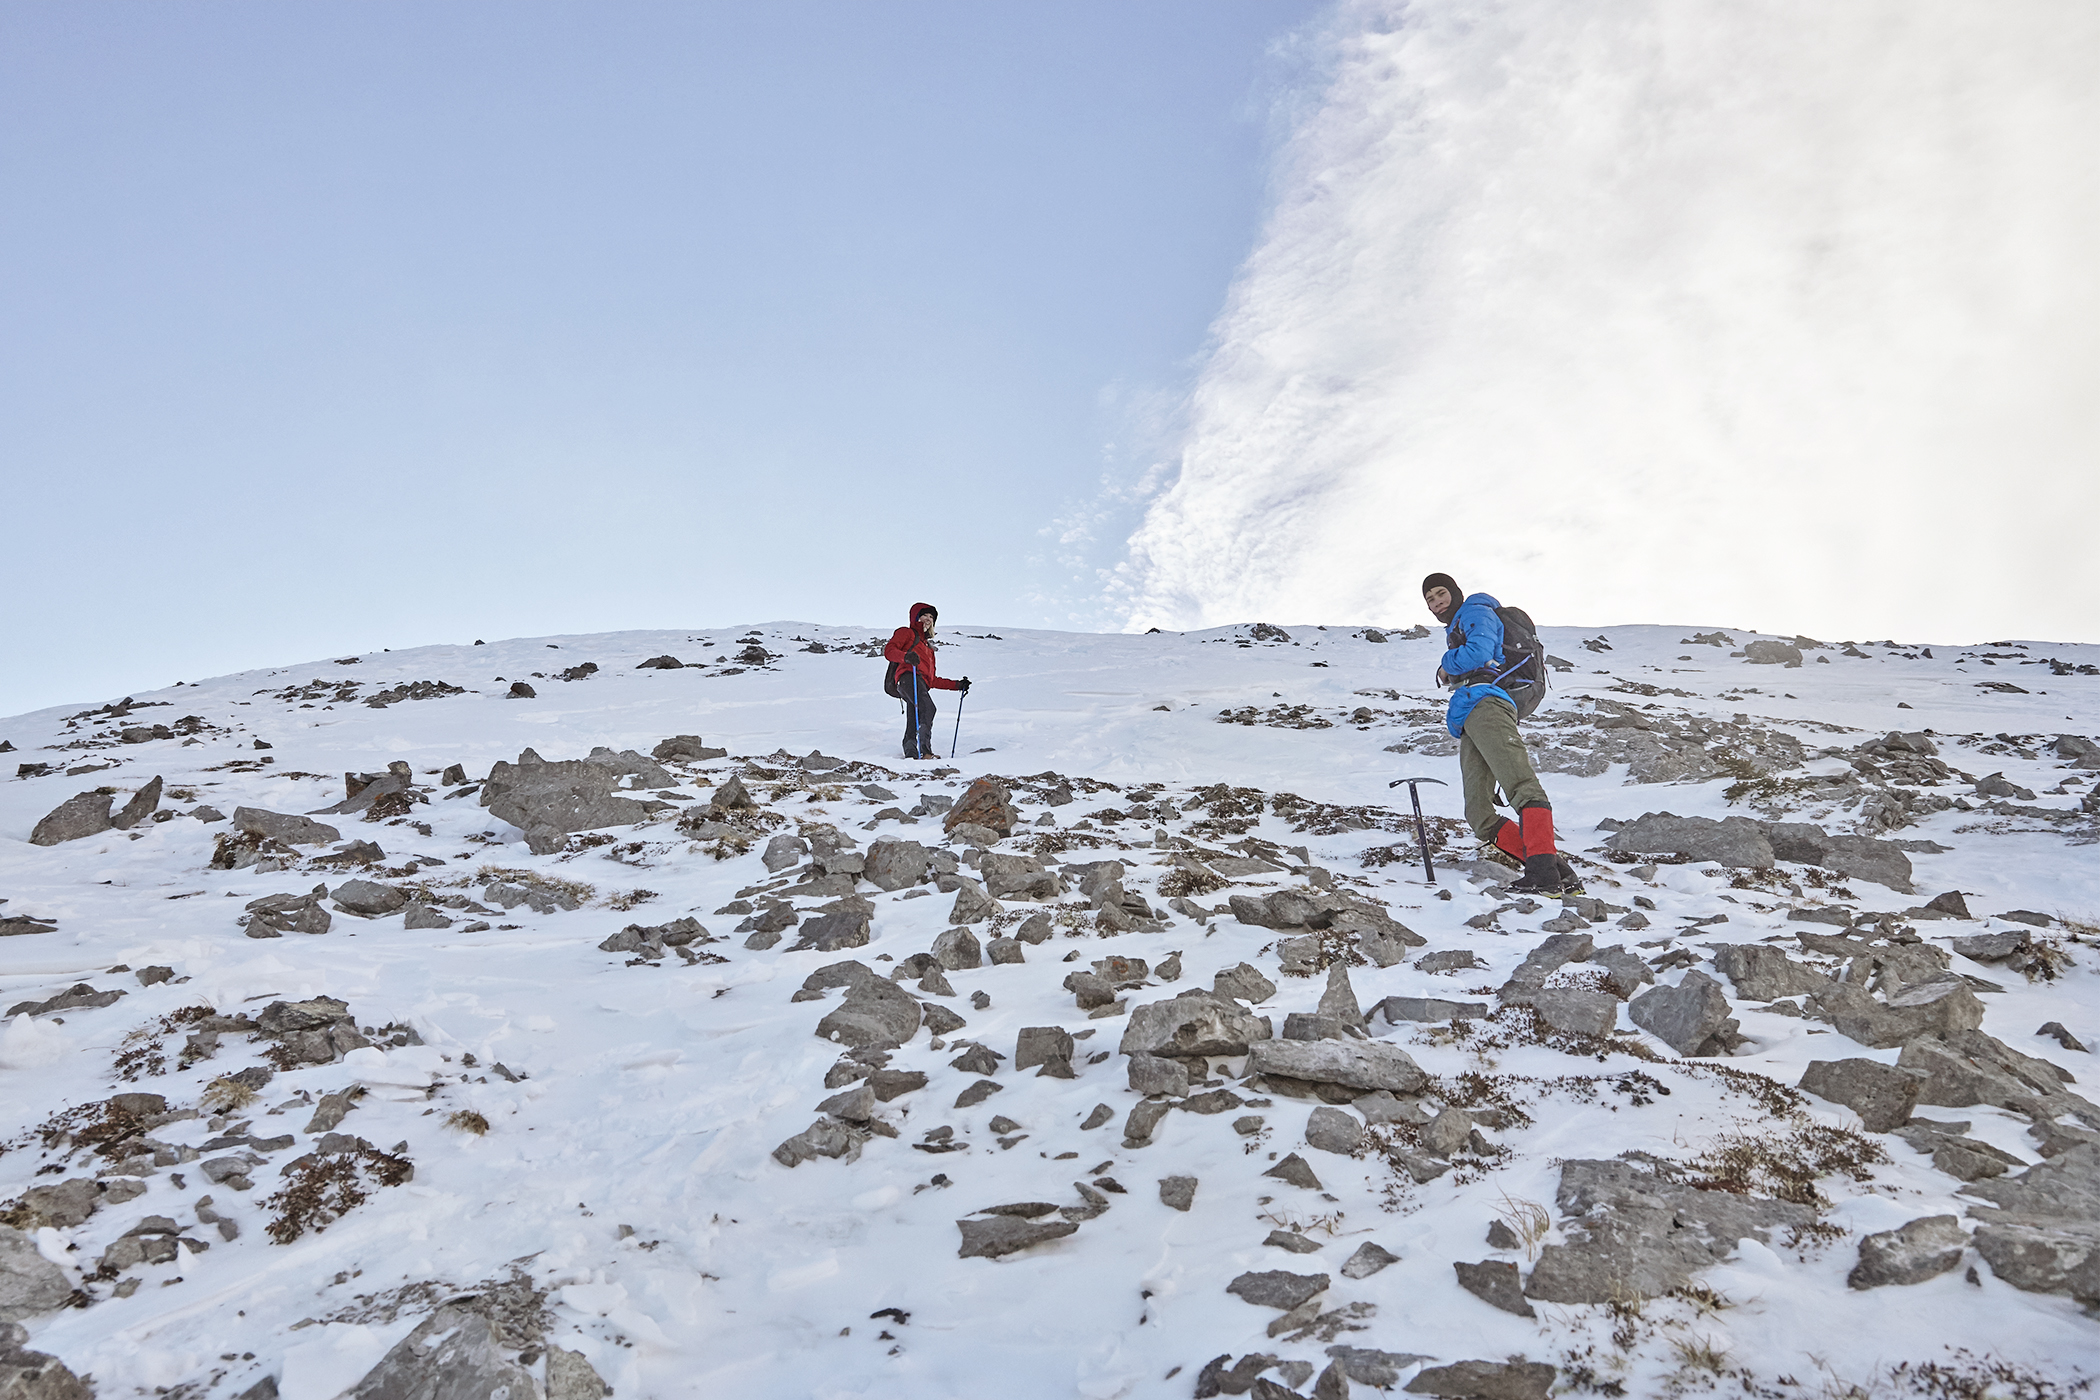 Yuri and Mindy ascend the last portion of snow and talus to the summit.